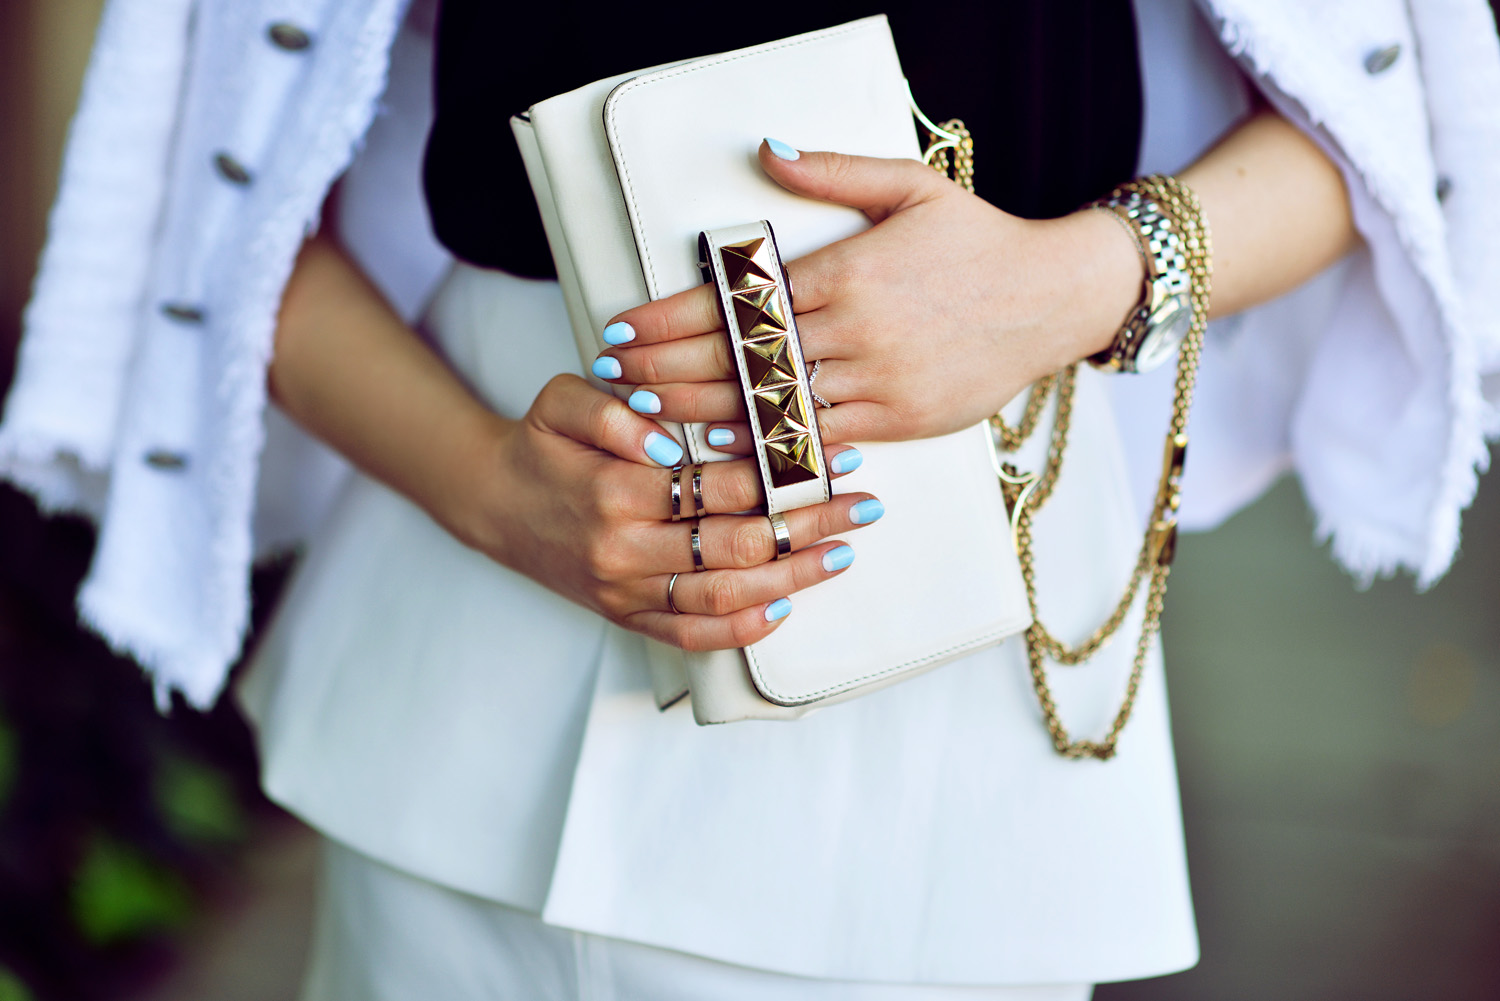 Los.Angeles.Kristina.Bazan.015